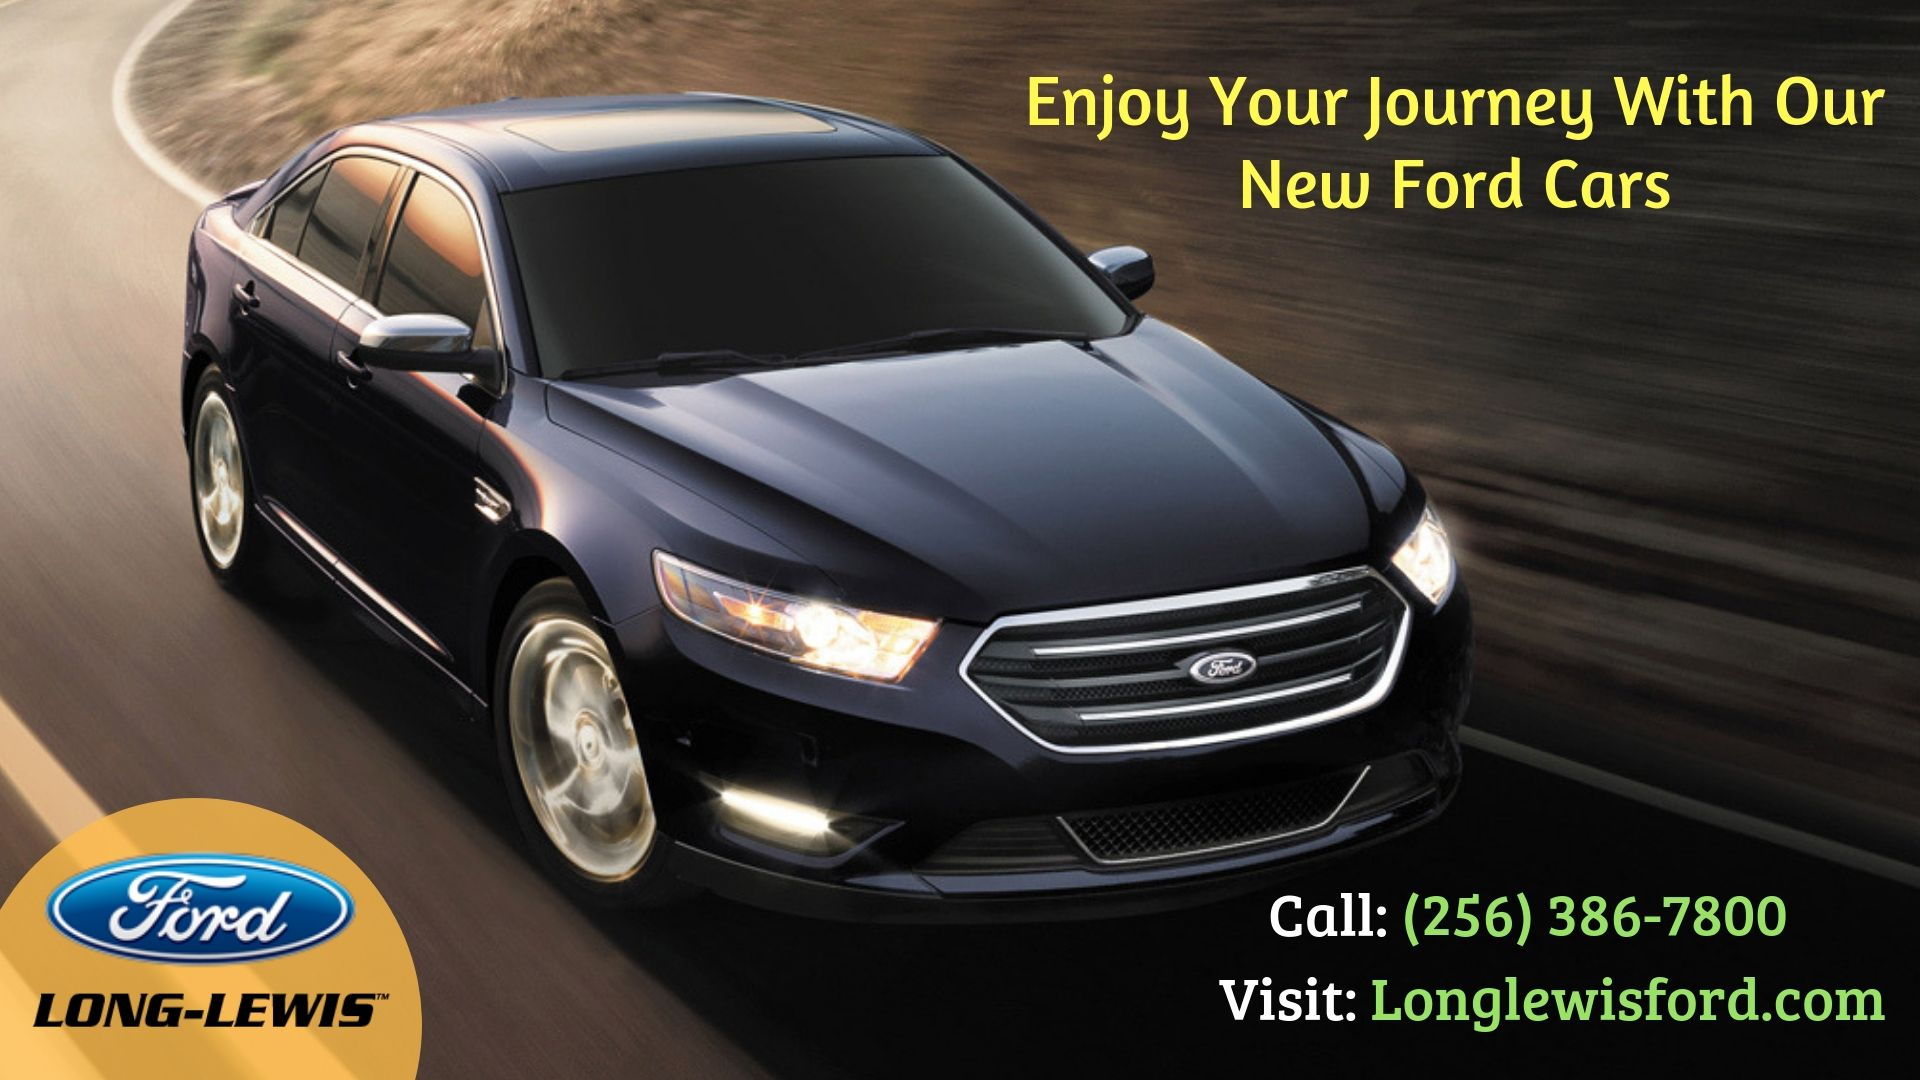 Enjoy Your Journey With Our New Ford Cars Ford Car Ford Dealership